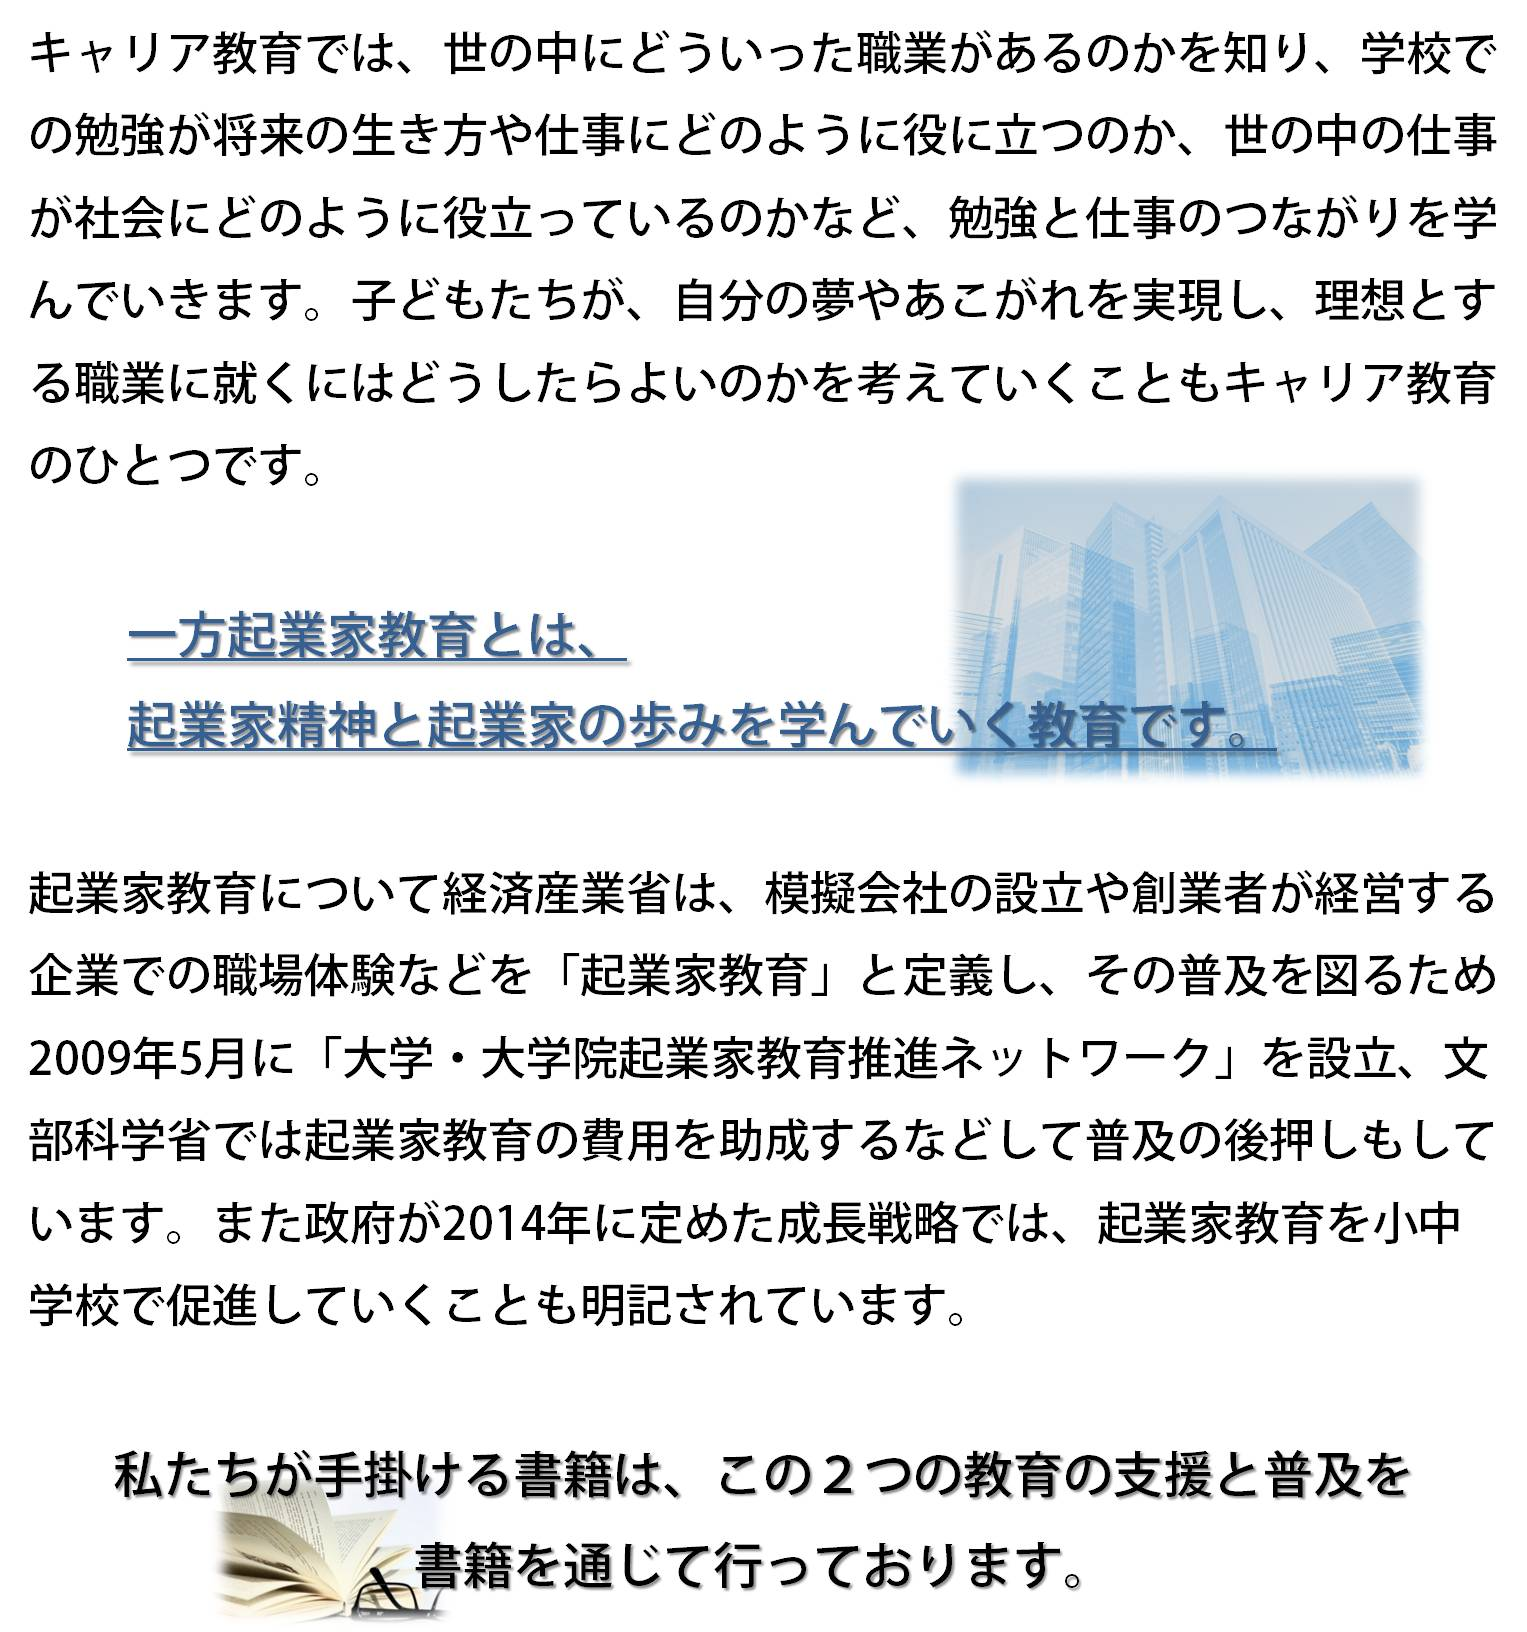 CEO GROUP  教育支援活動について